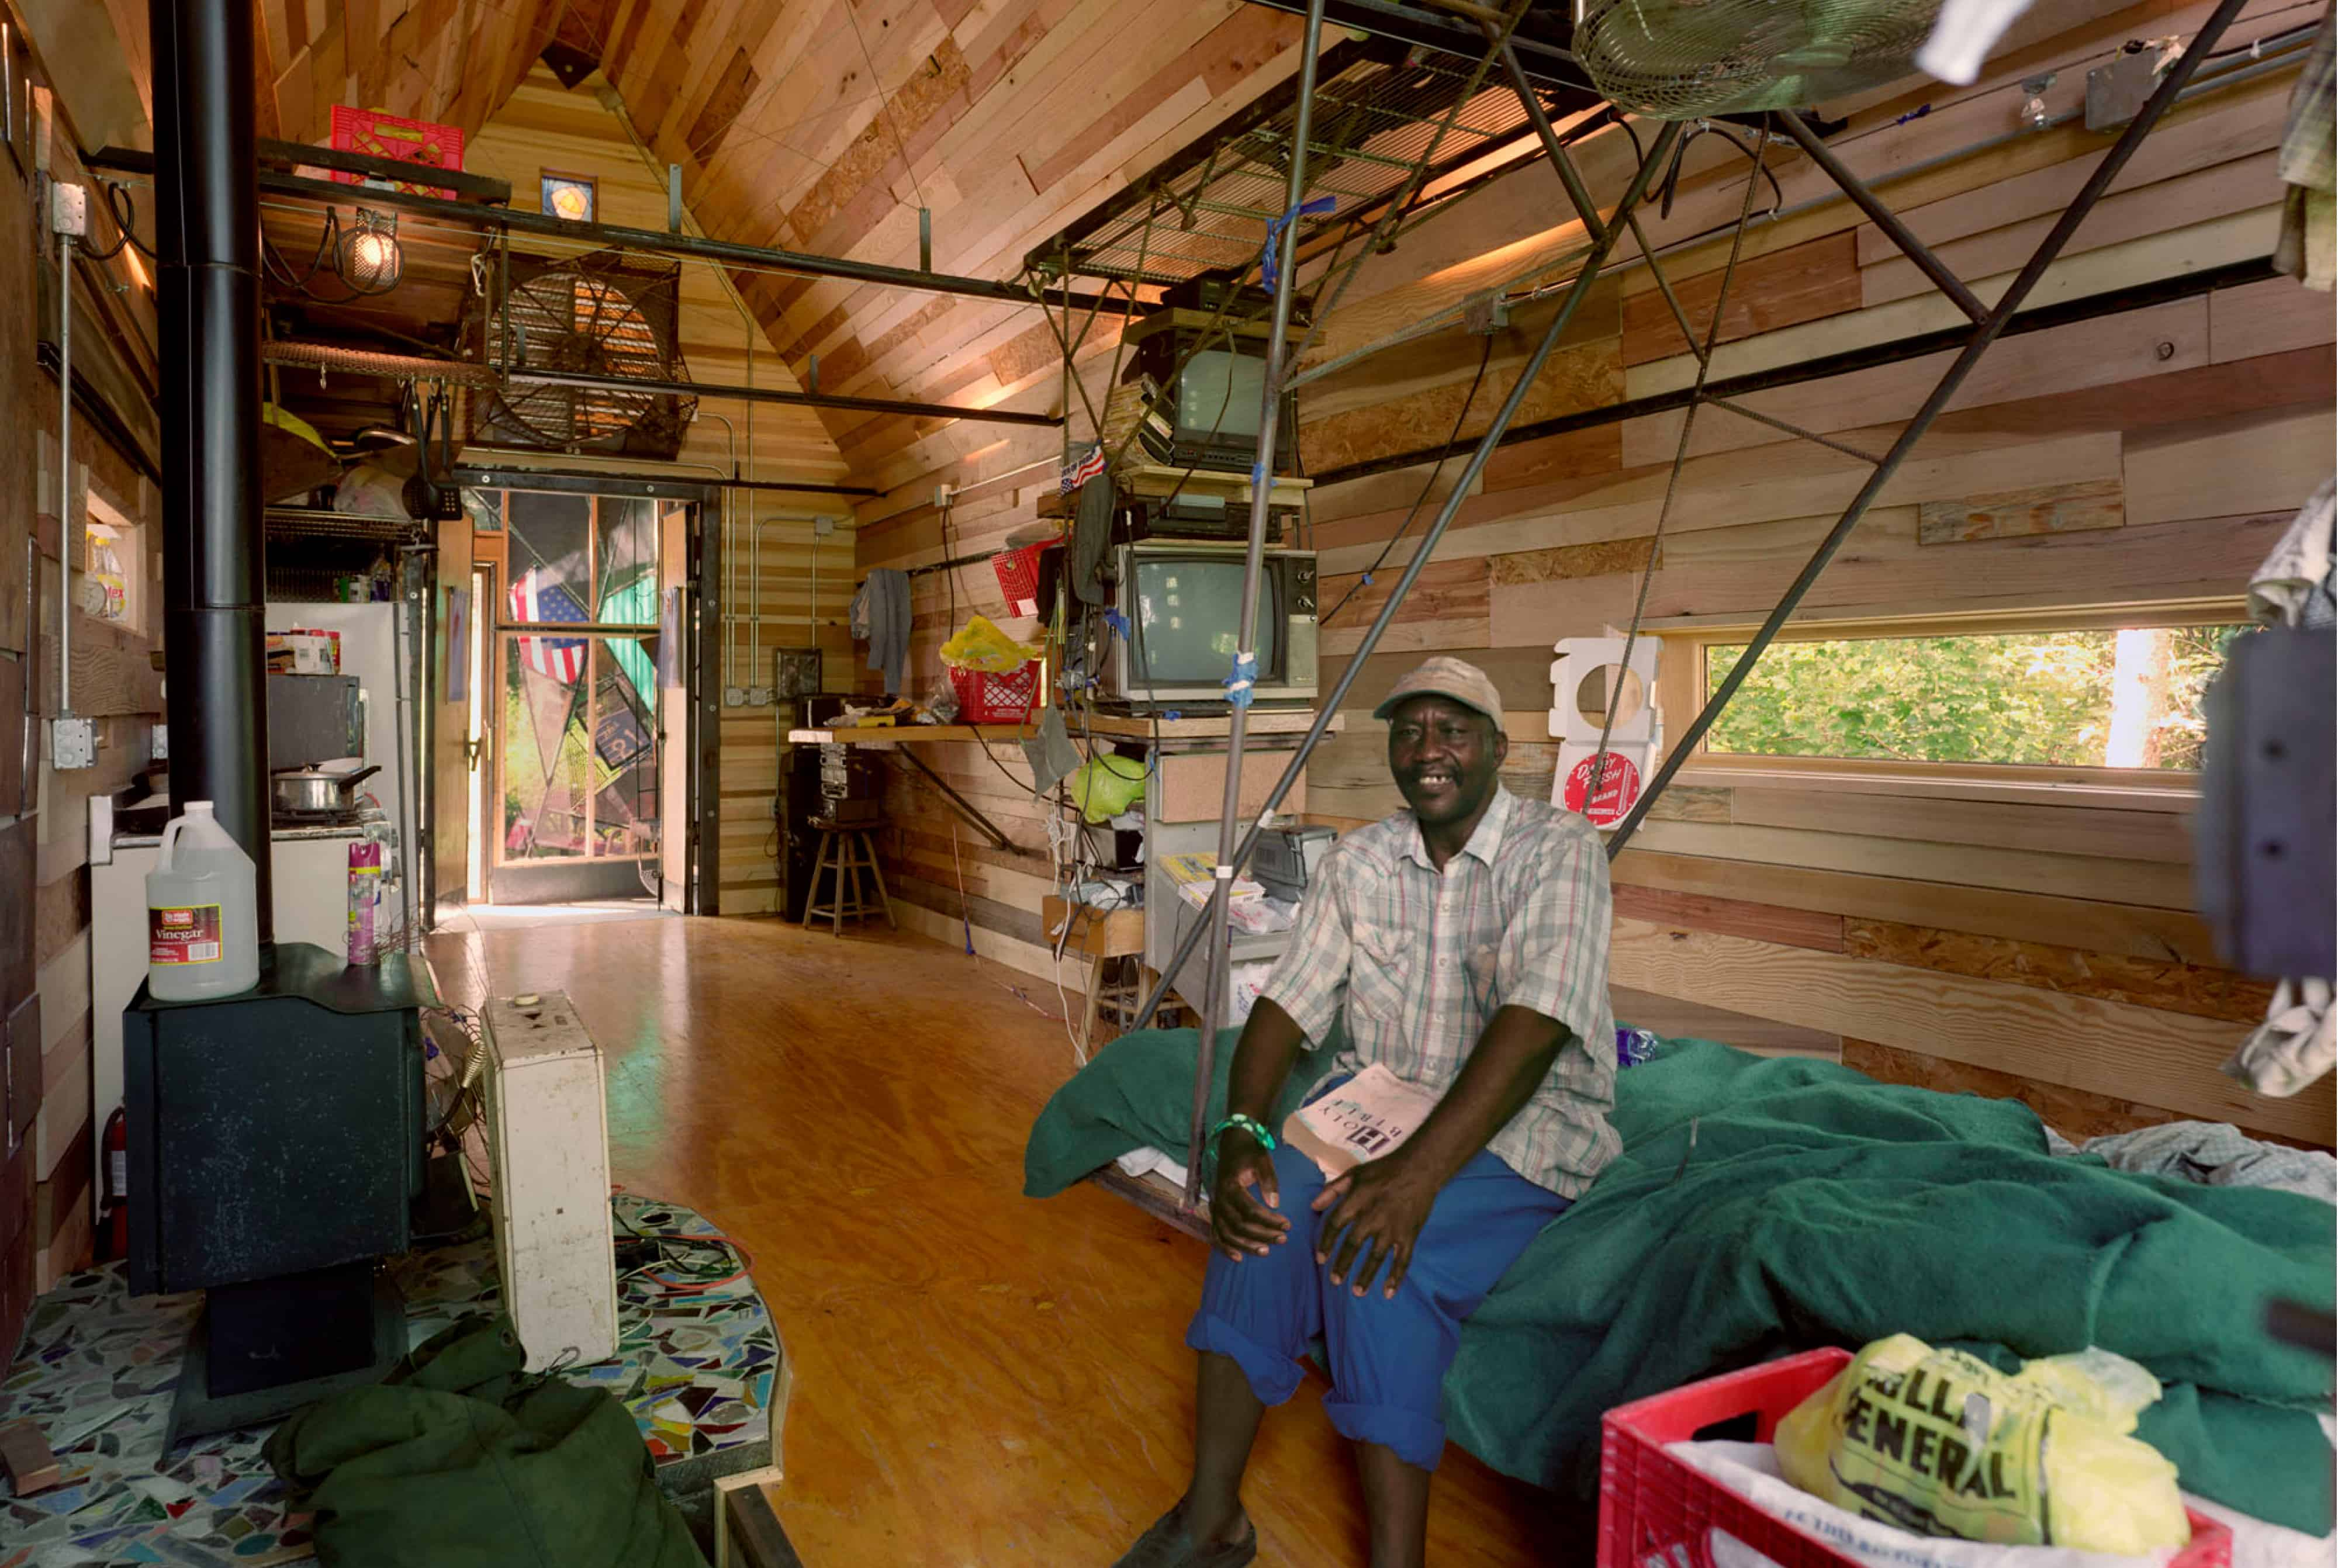 Music Man sitting inside his home surrounded by items he has collected